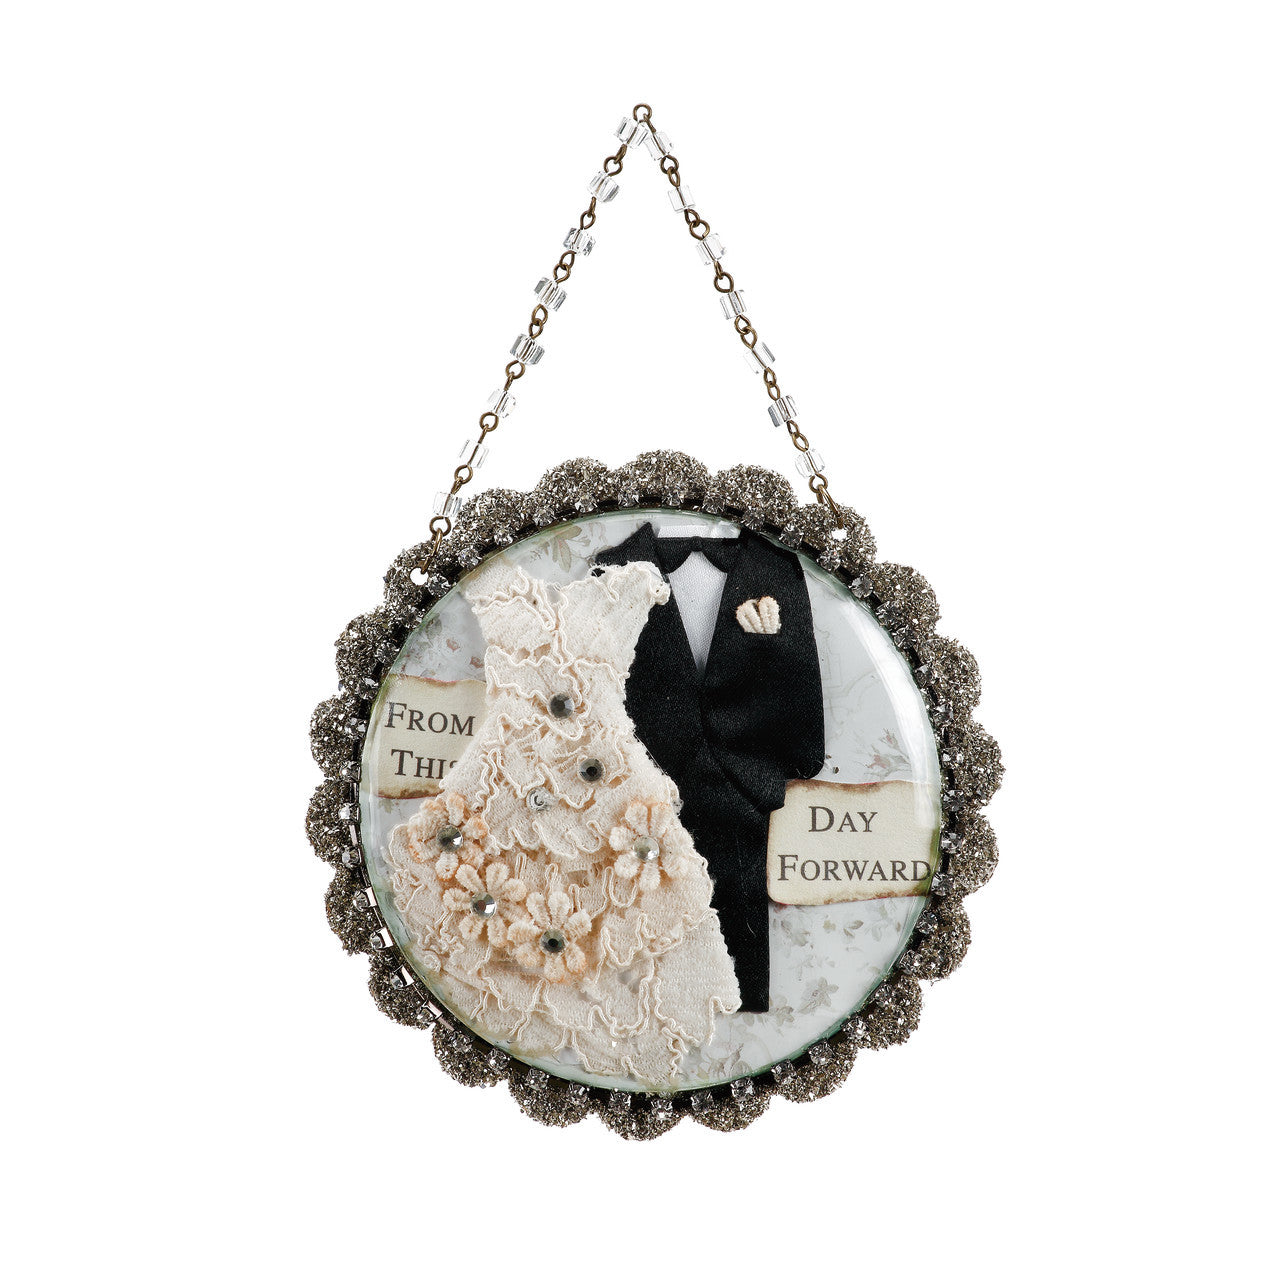 Wedded Bliss - From This Day Forward Wedding Ornament - Gifts for Married Couples